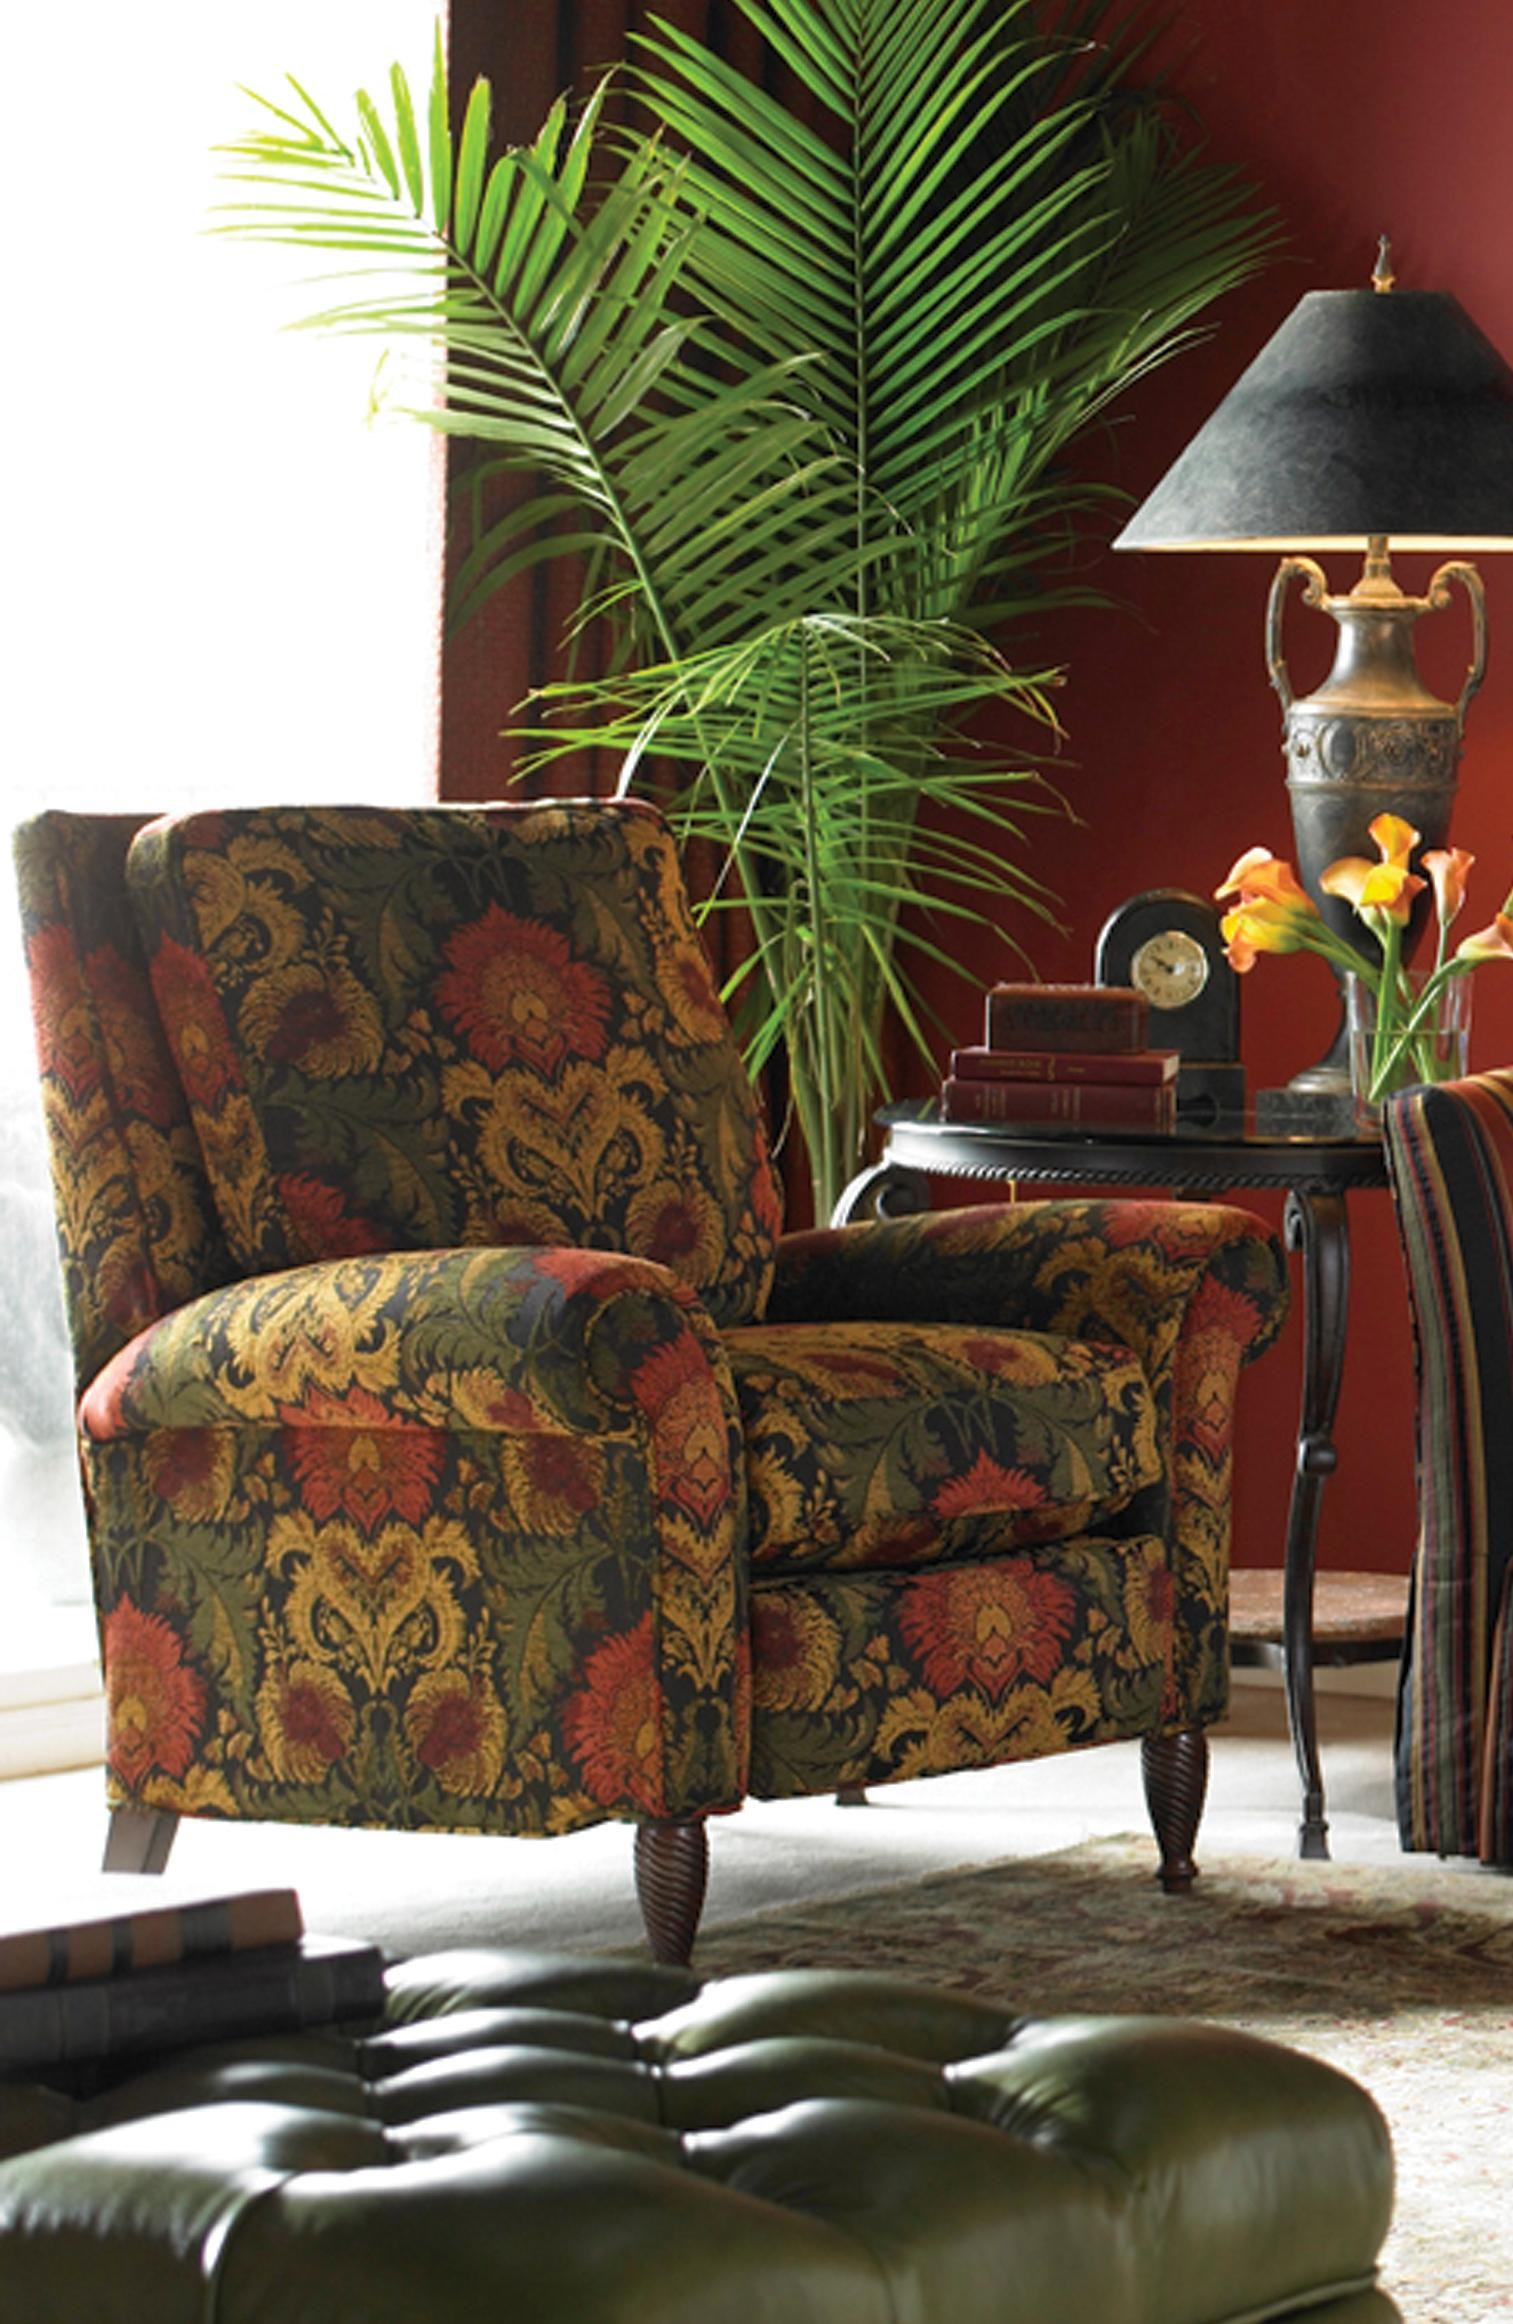 Recliners By MotionCraft By Sherrill